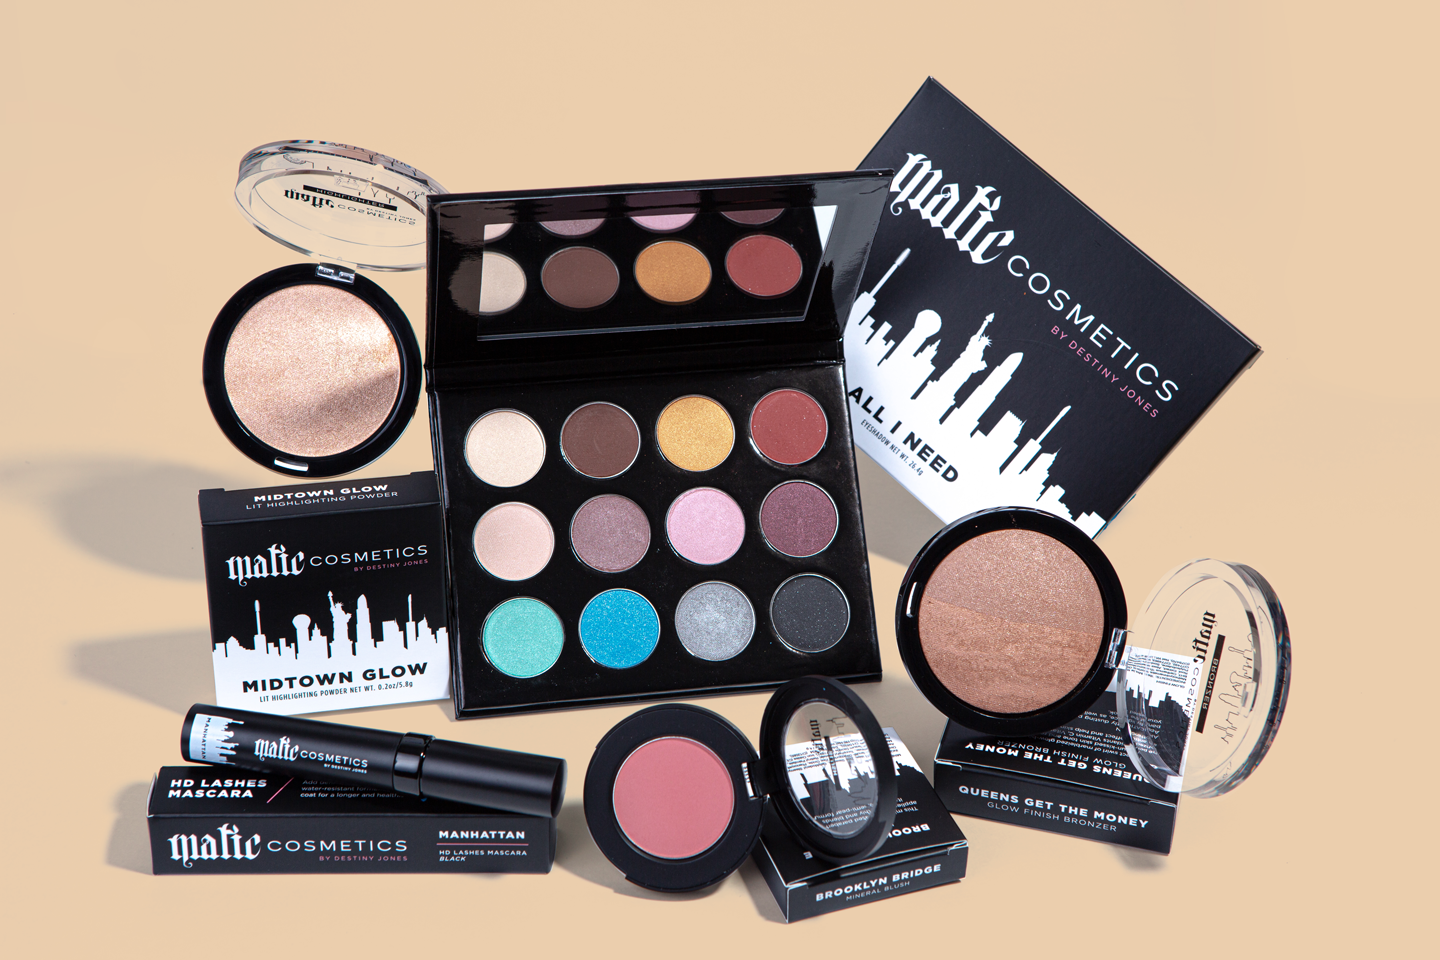 The All I Need Collection by Matic Cosmetics